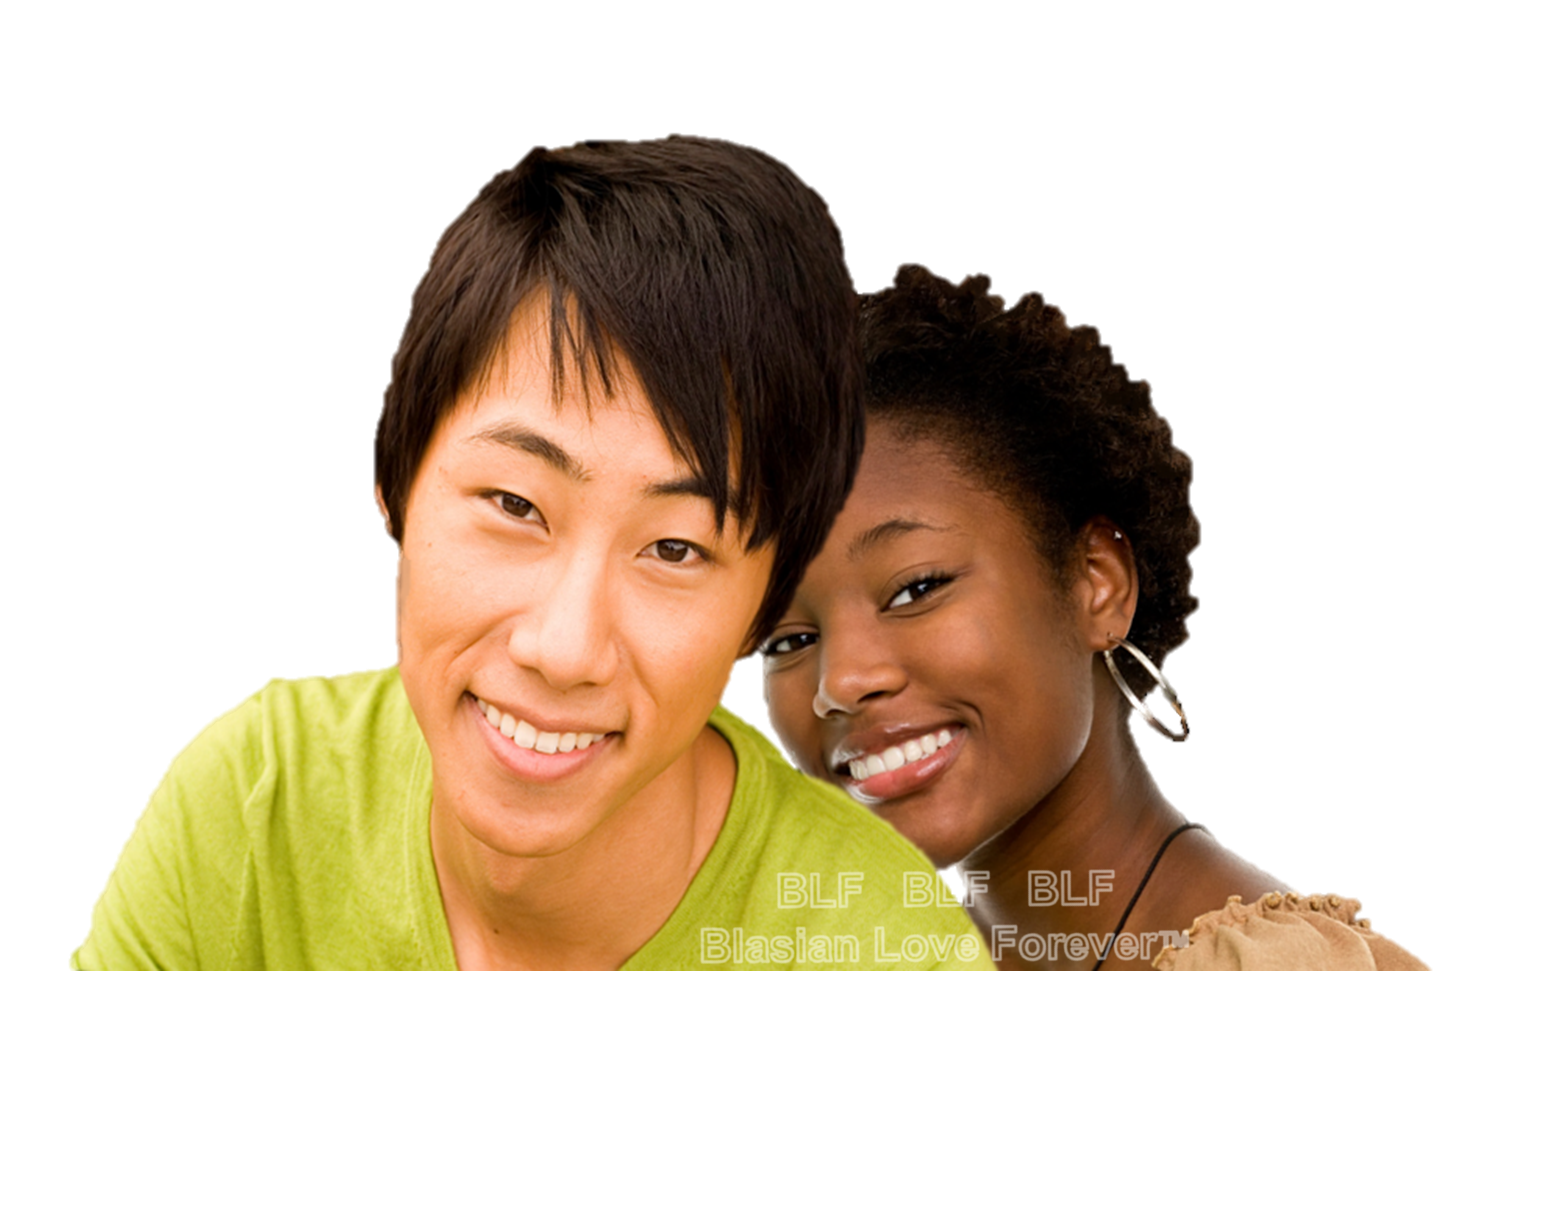 starrucca black women dating site Date black men & asian women blasian luv forever™ is the #1 bmaw dating website on the planet bmaw dating: quality matches for friendship & marriage.